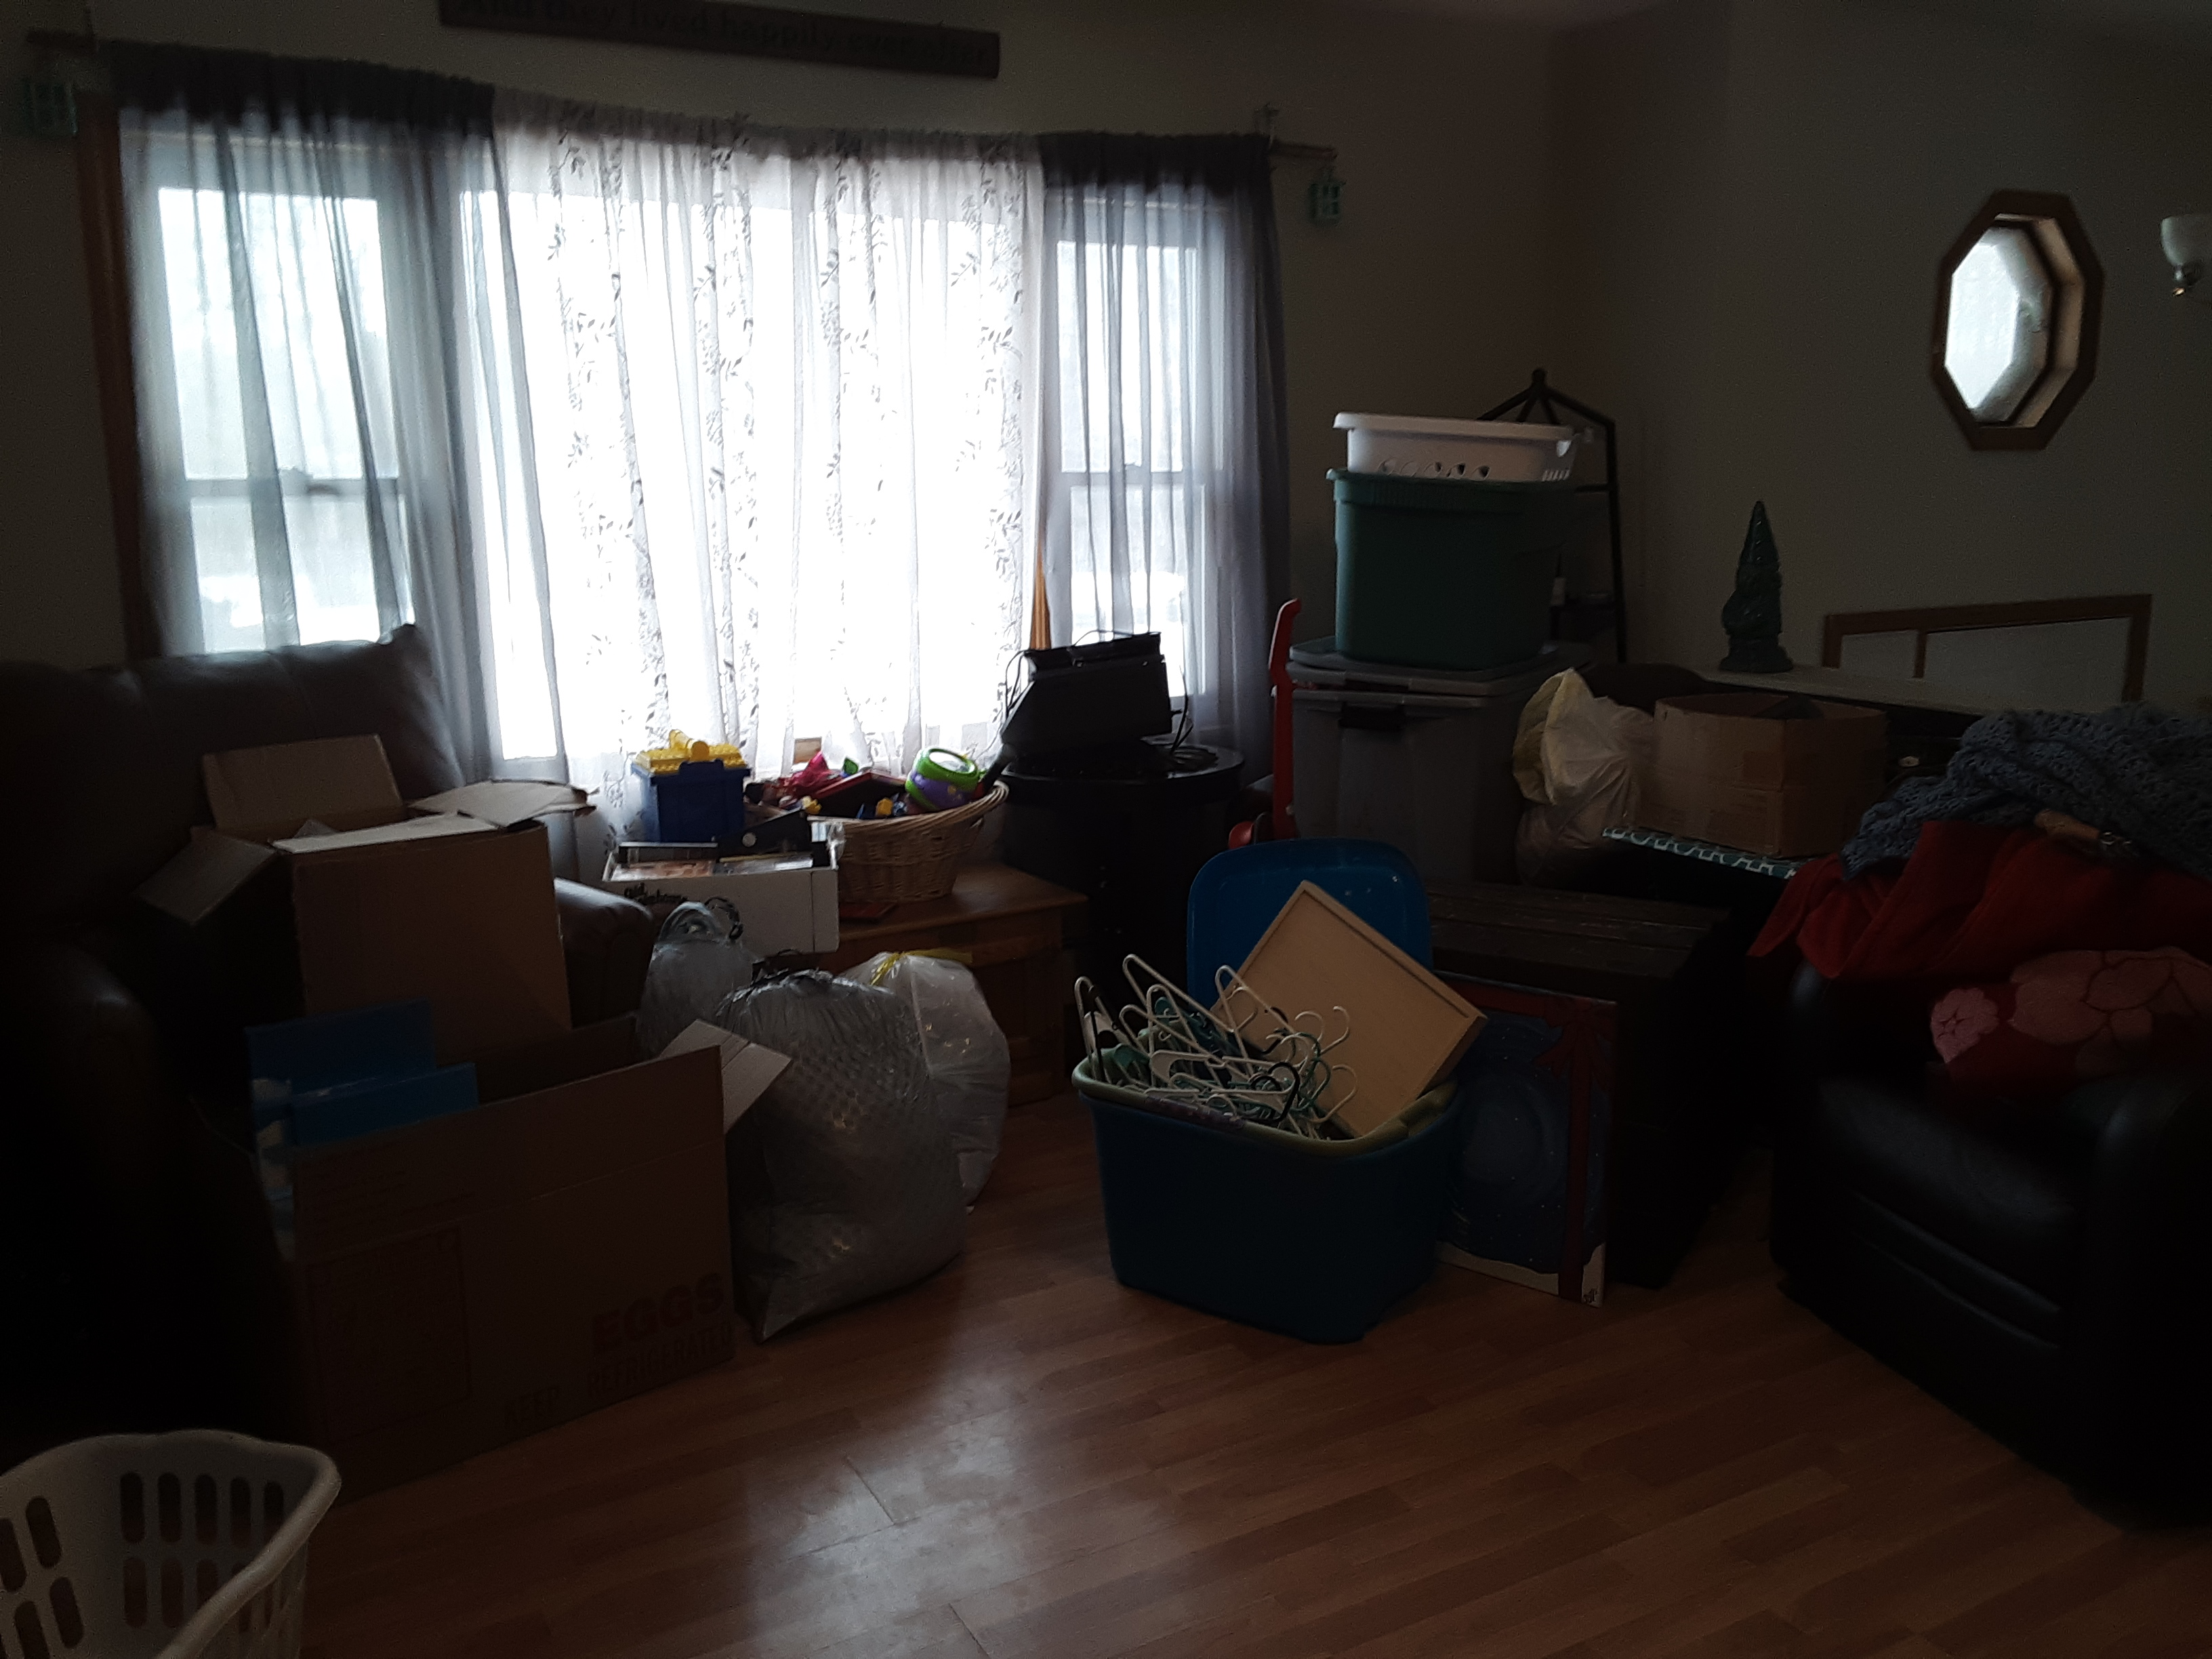 Clutter to be cleared